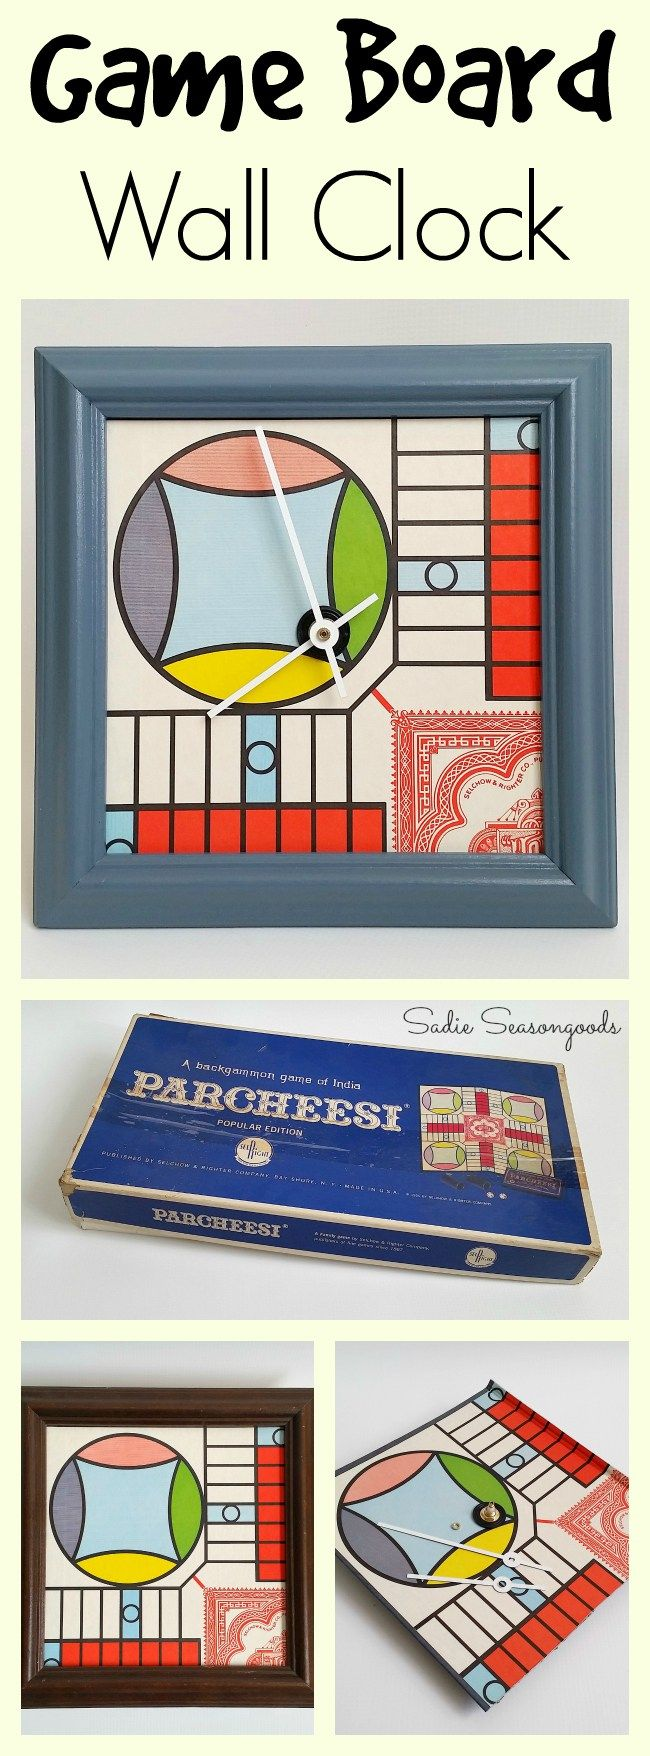 I had a vintage 1964 Parcheesi game board that had a little bit of water damage on it...so I salvaged what I could and upcycled it into a funky, decorative wall clock. Perfect repurposing craft project to add color to any room! #SadieSeasongoods